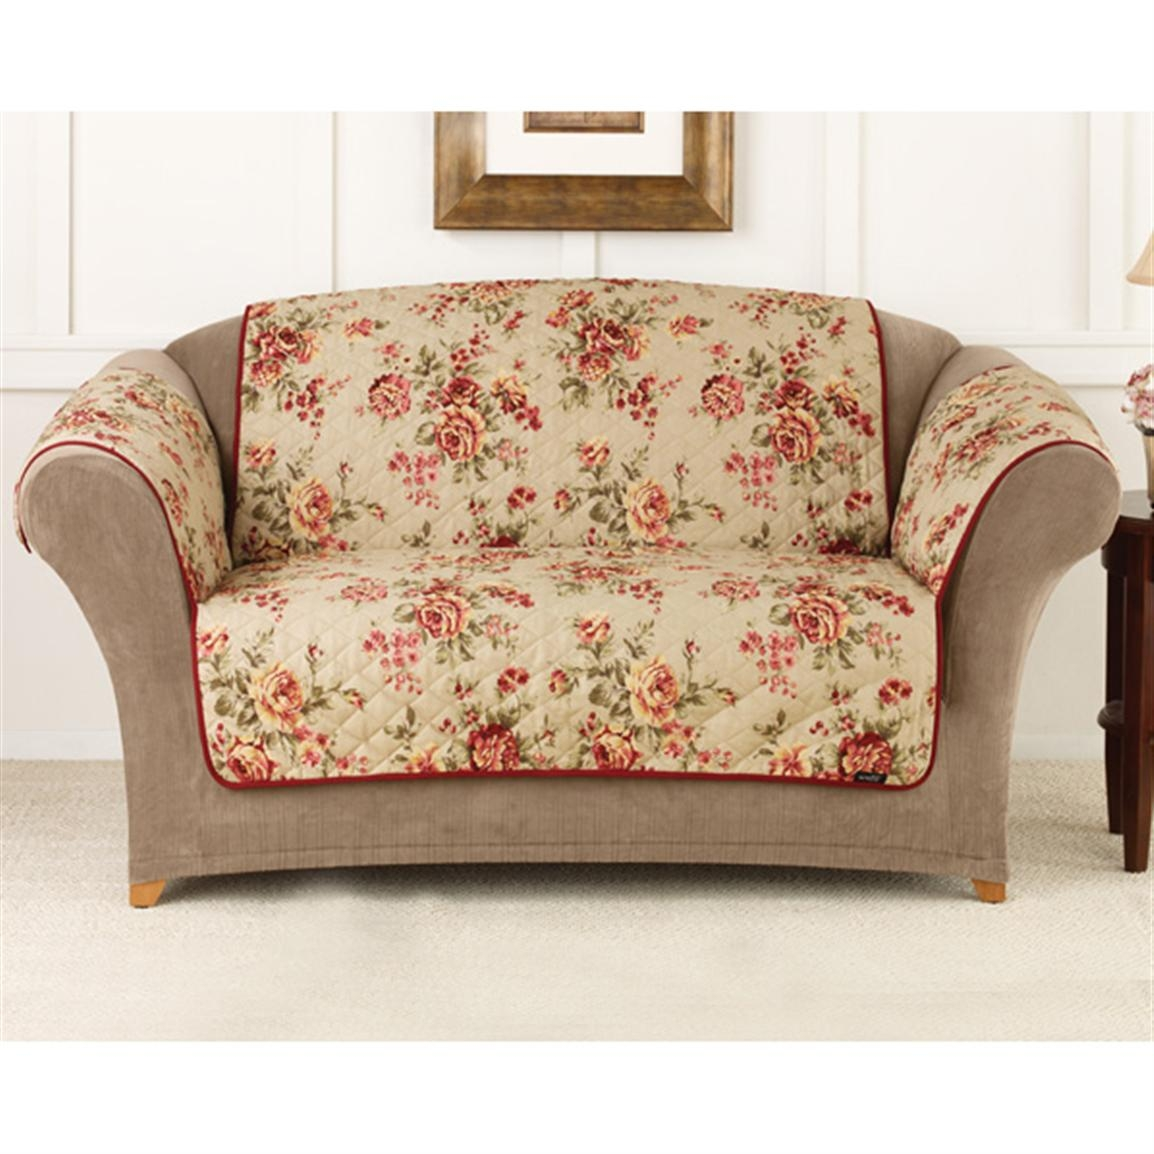 Flower Print Sofa 1970 Floral Sofa Flower Print Couch Suzy Q Within Chintz Sofa Covers (Photo 5 of 15)